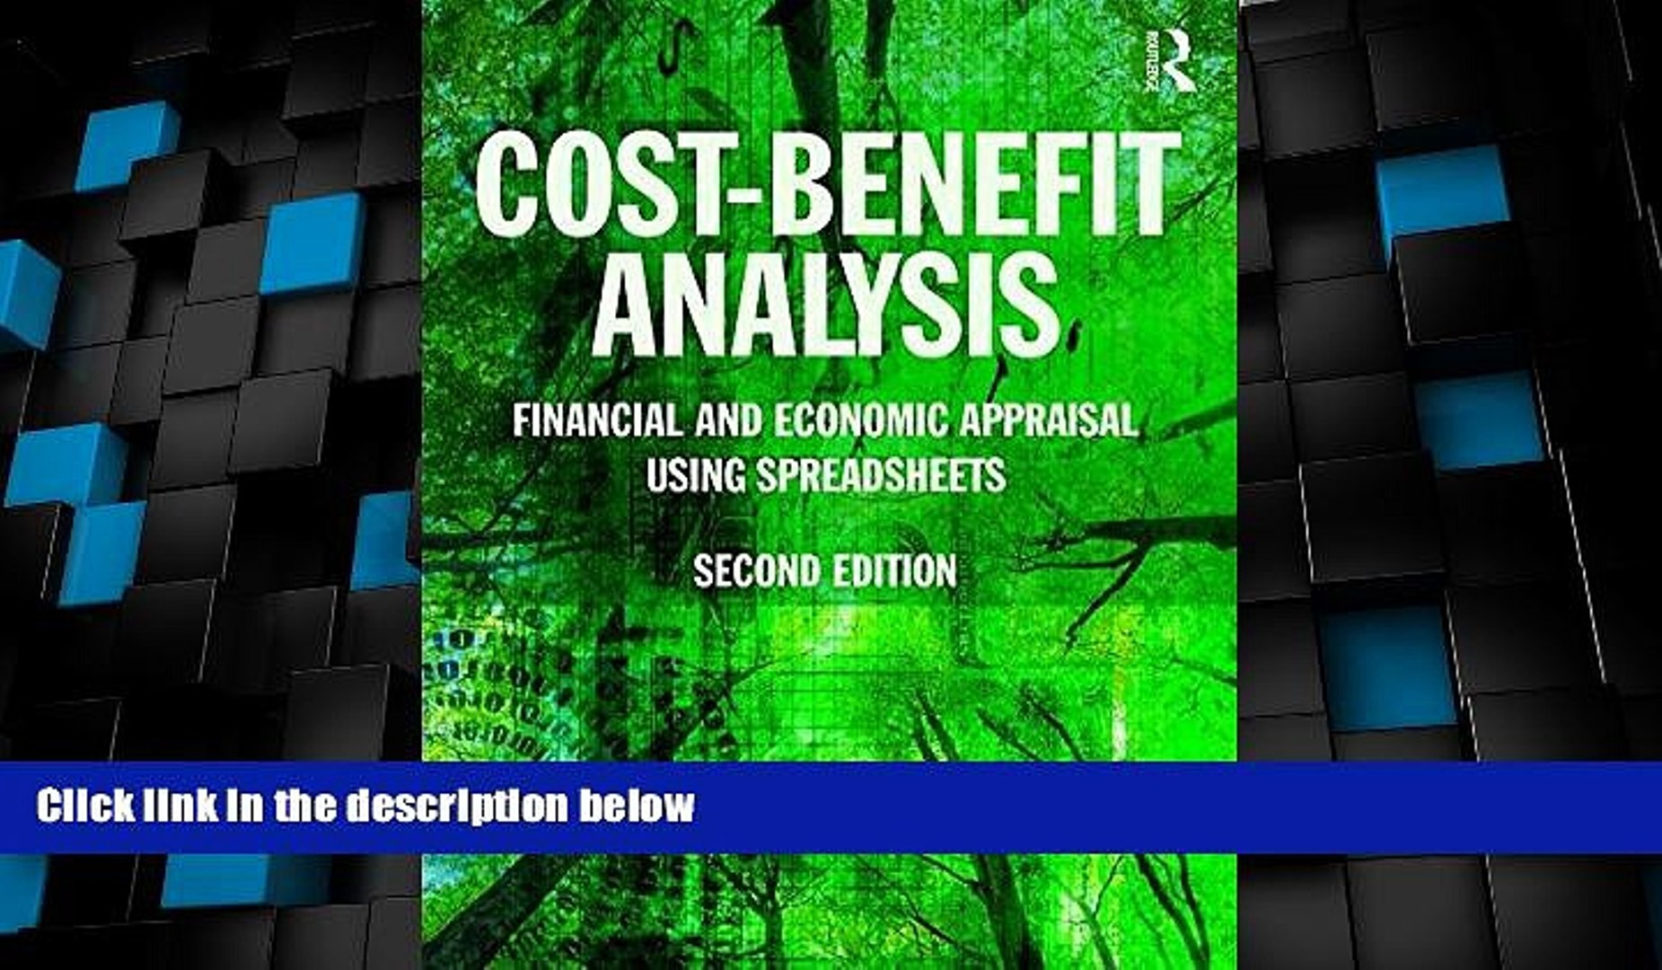 Cost Benefit Analysis Financial And Economic Appraisal Using Spreadsheets Regarding Must Have Pdf Costbenefit Analysis: Financial And Economic